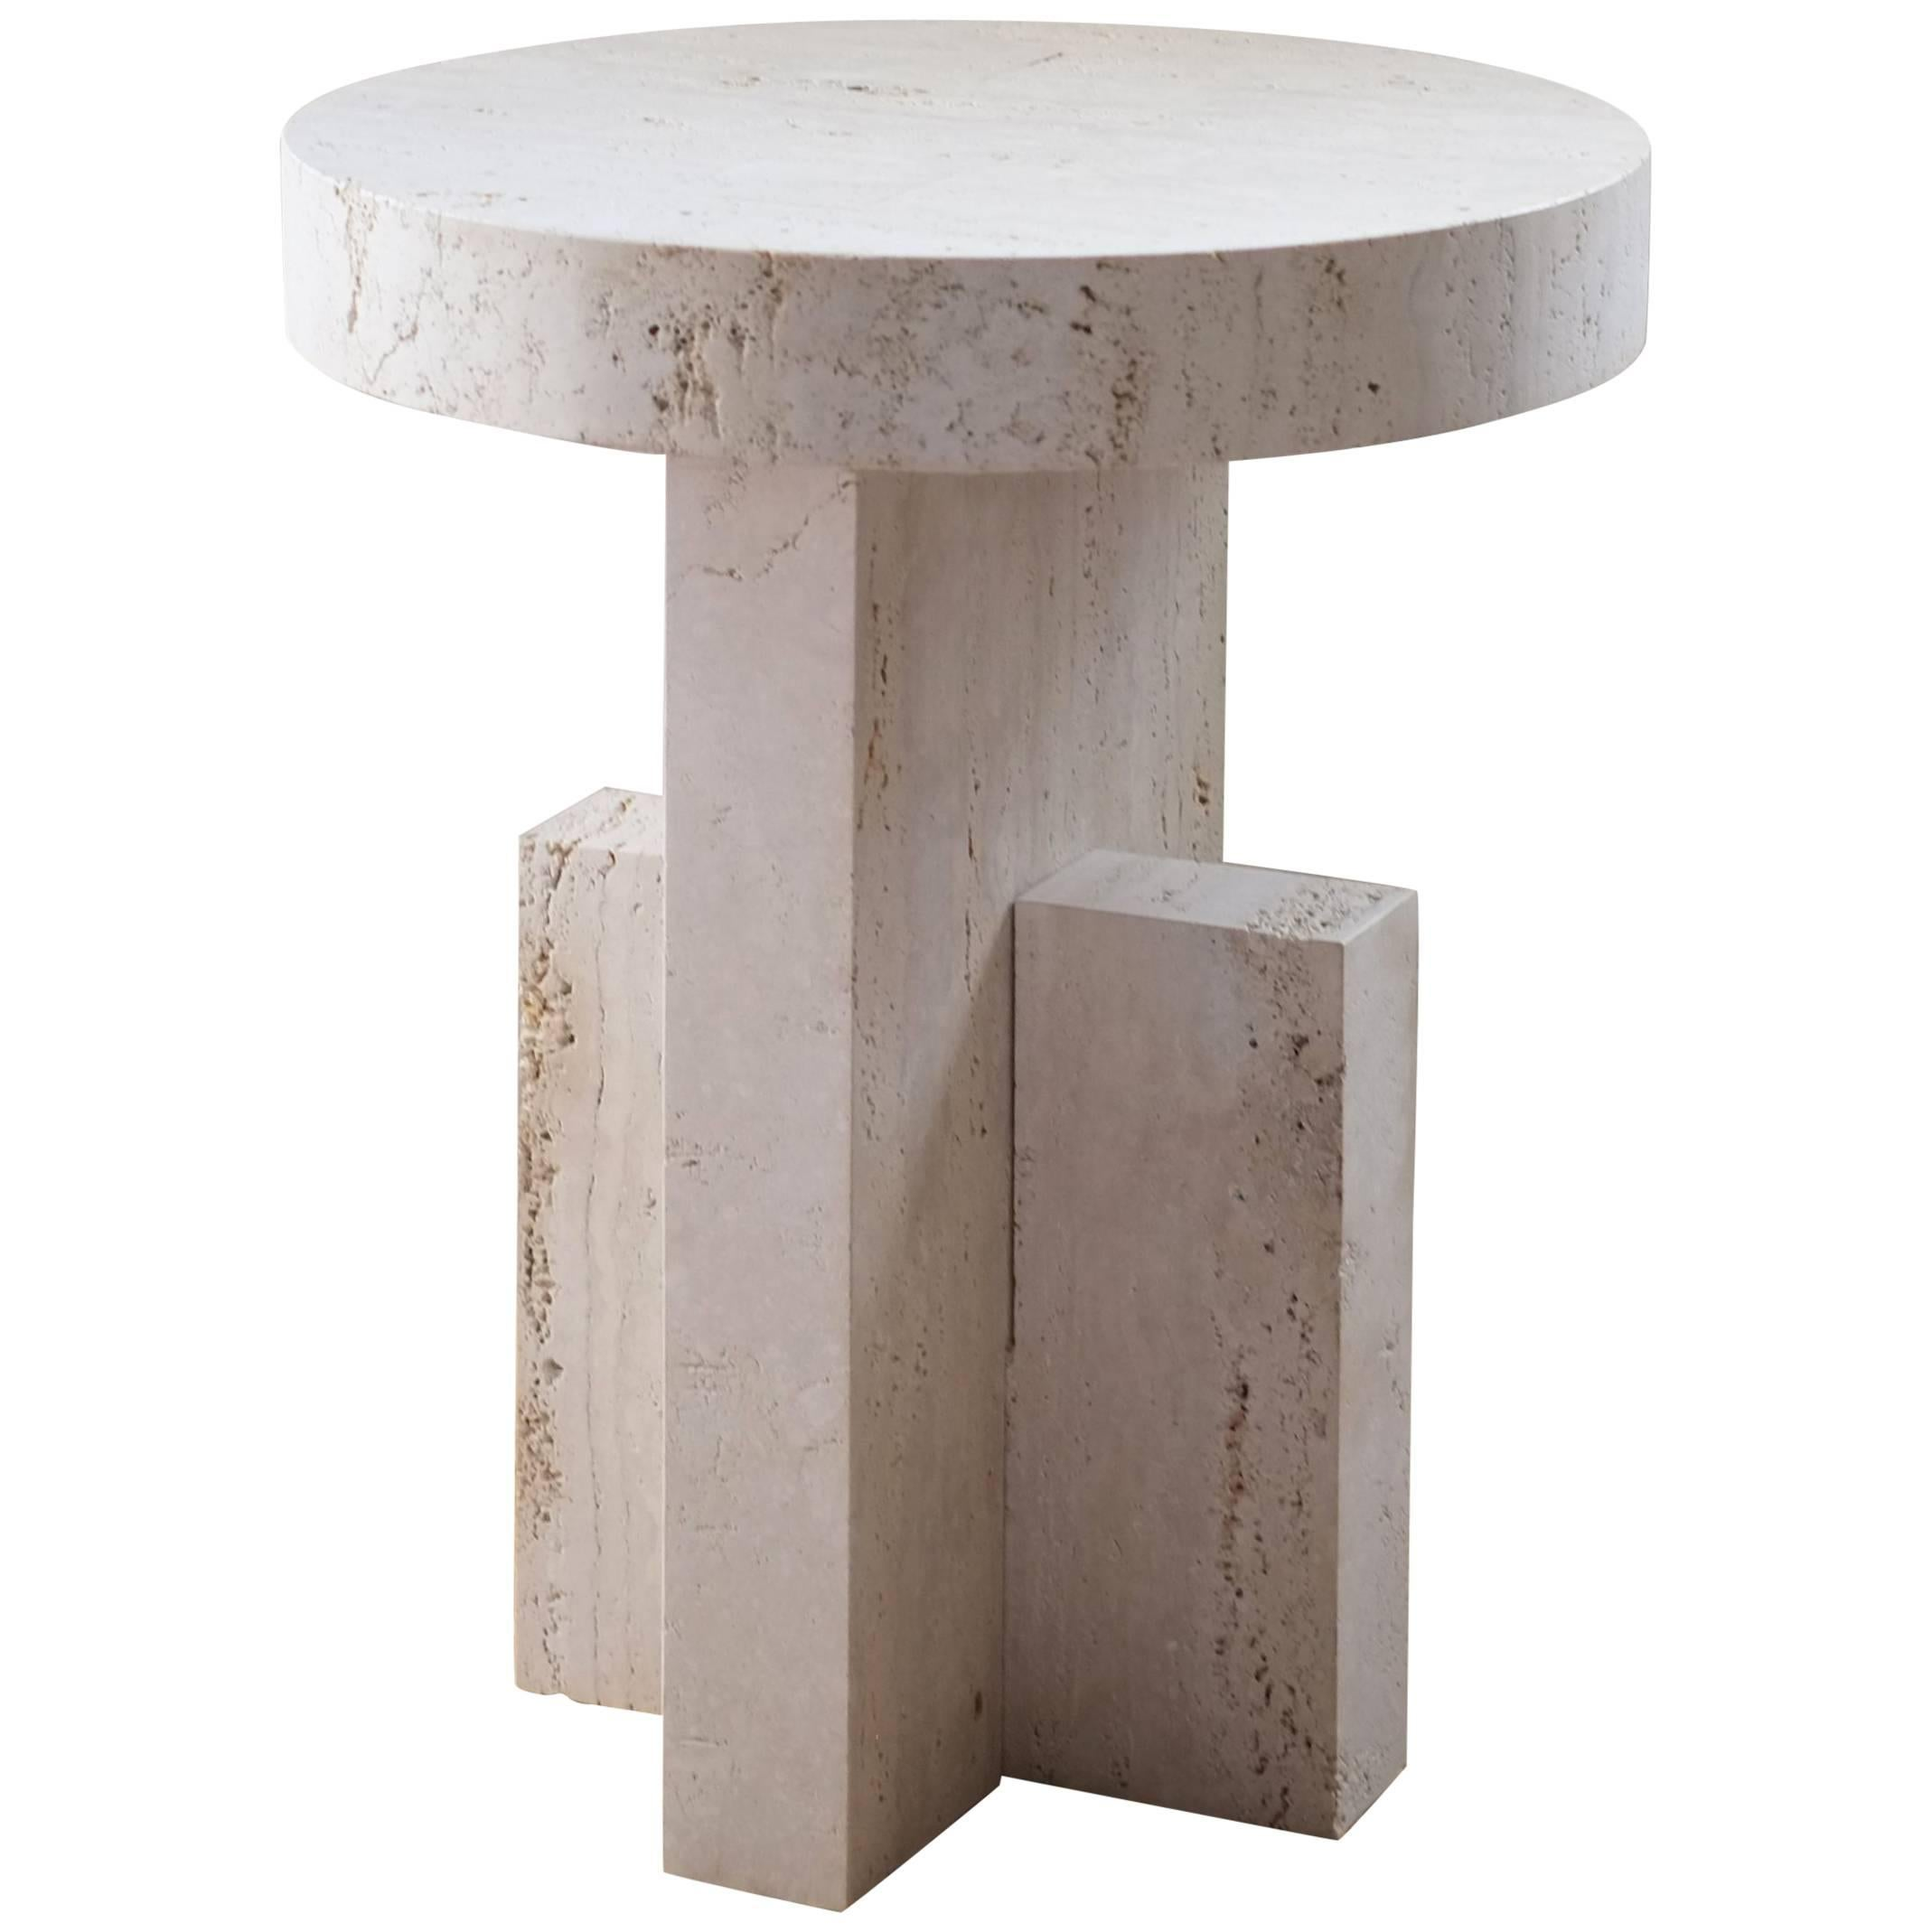 Contemporary Planar Side Table in Travertine Stone by Fort Standard